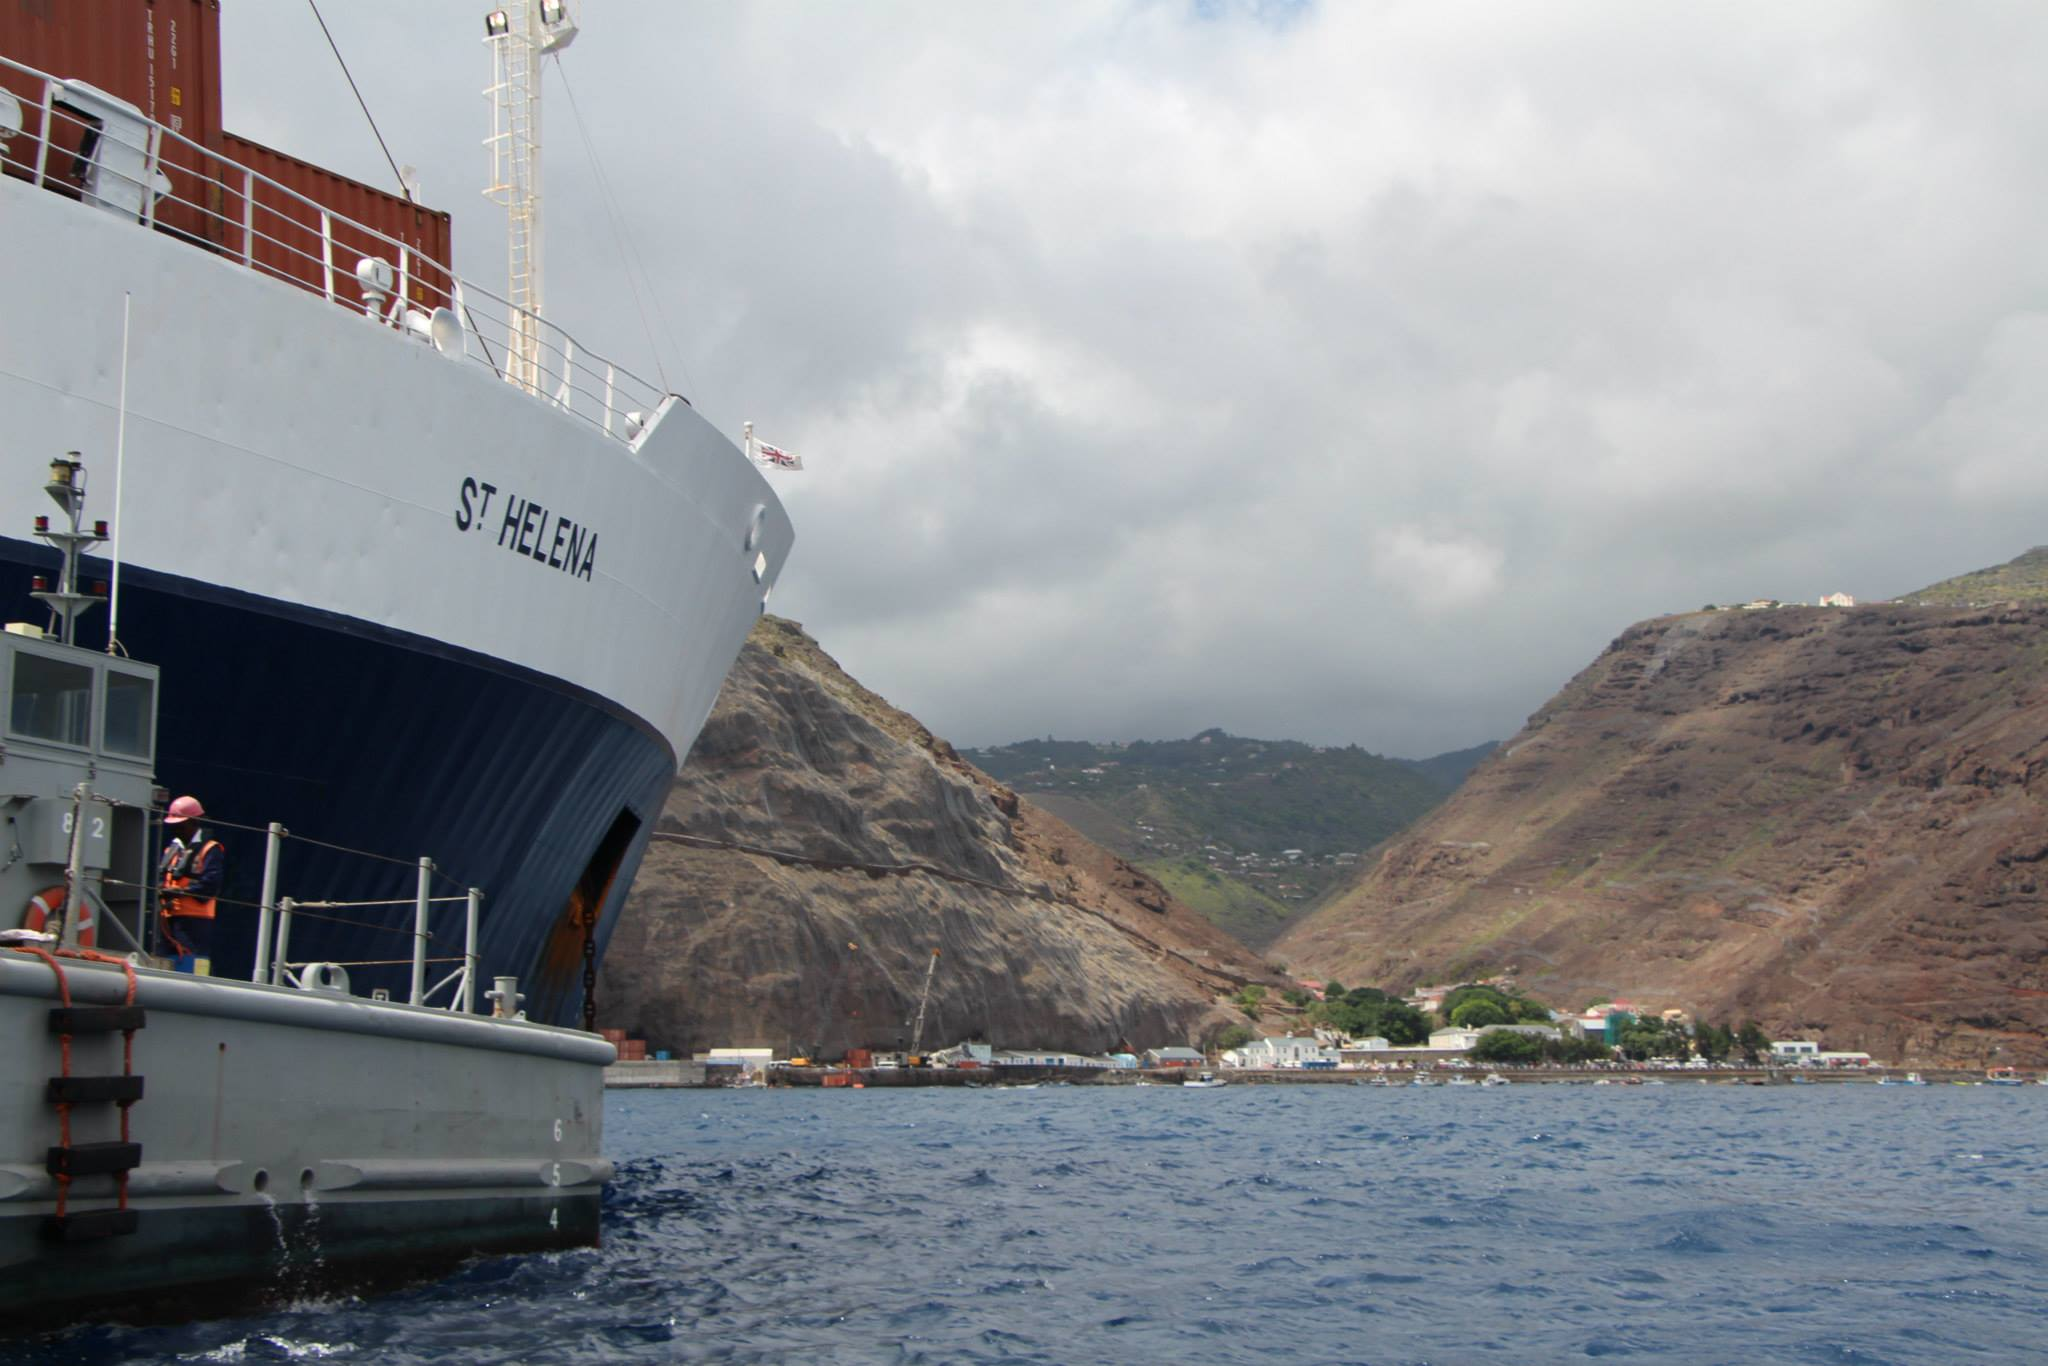 The RMS St Helena looking towards Jamestown, St Helena, April 2015